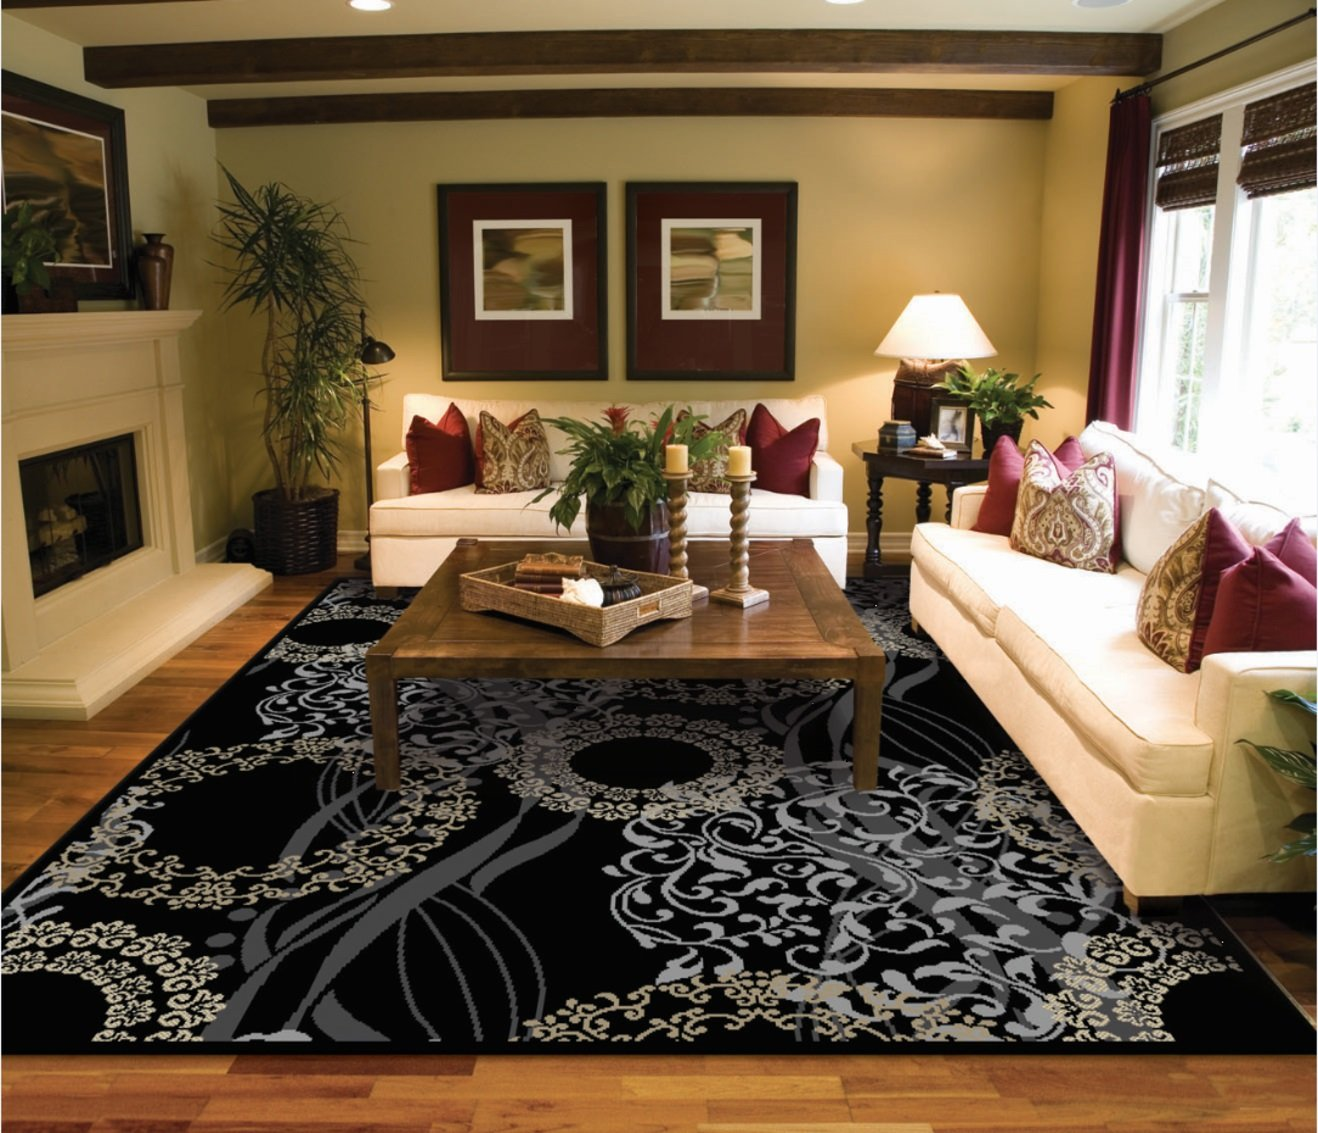 Amazon Luxutry Modern Rugs For Living Dining Room Black Cream Beige Rug Large 8x11 Contemporary 8x10 Area Clearance Home Kitchen